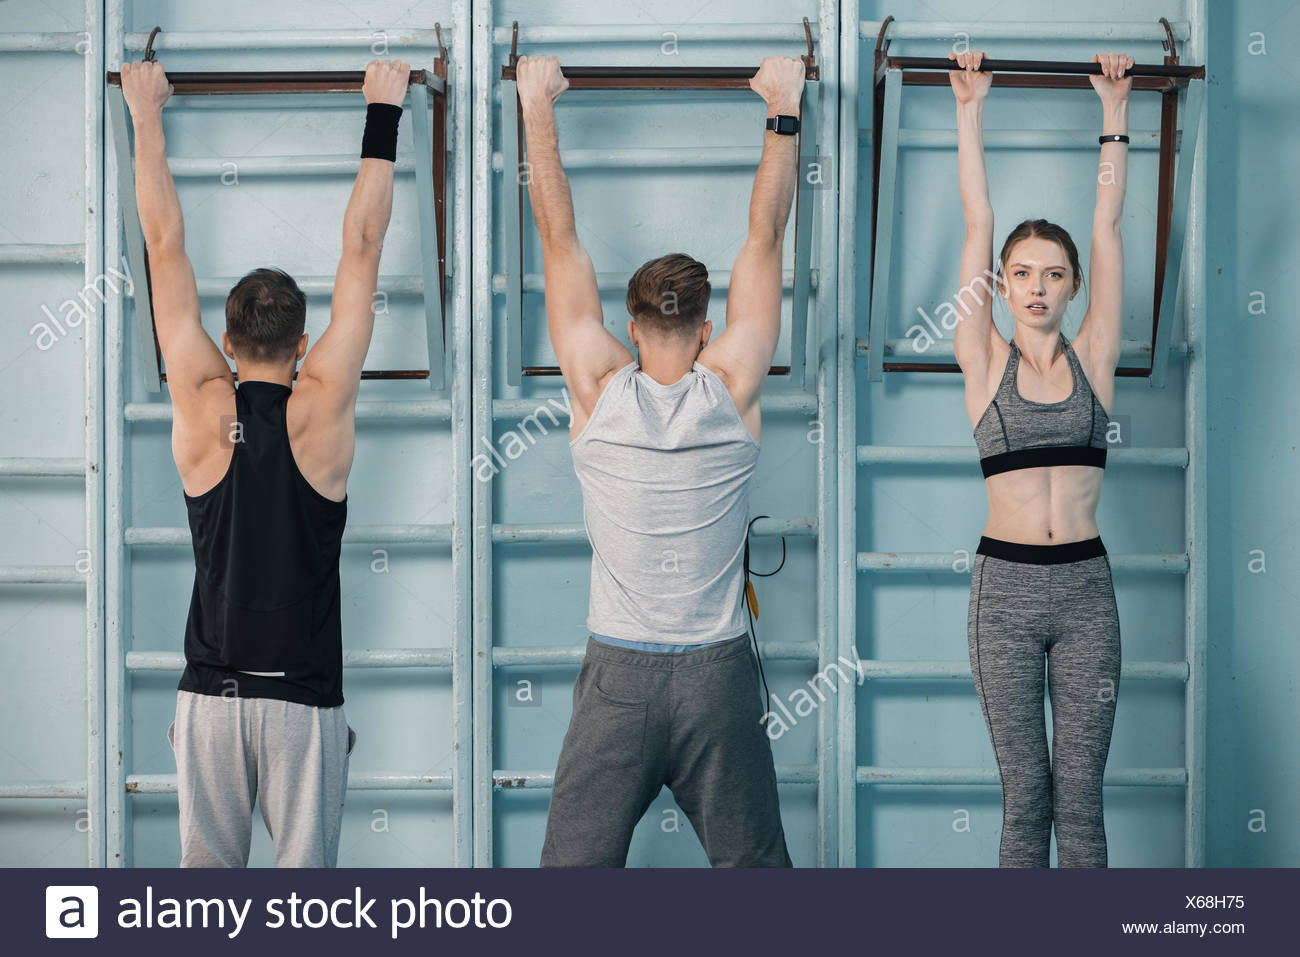 sporty men and woman hanging on sport equipment in gym - Stock Image